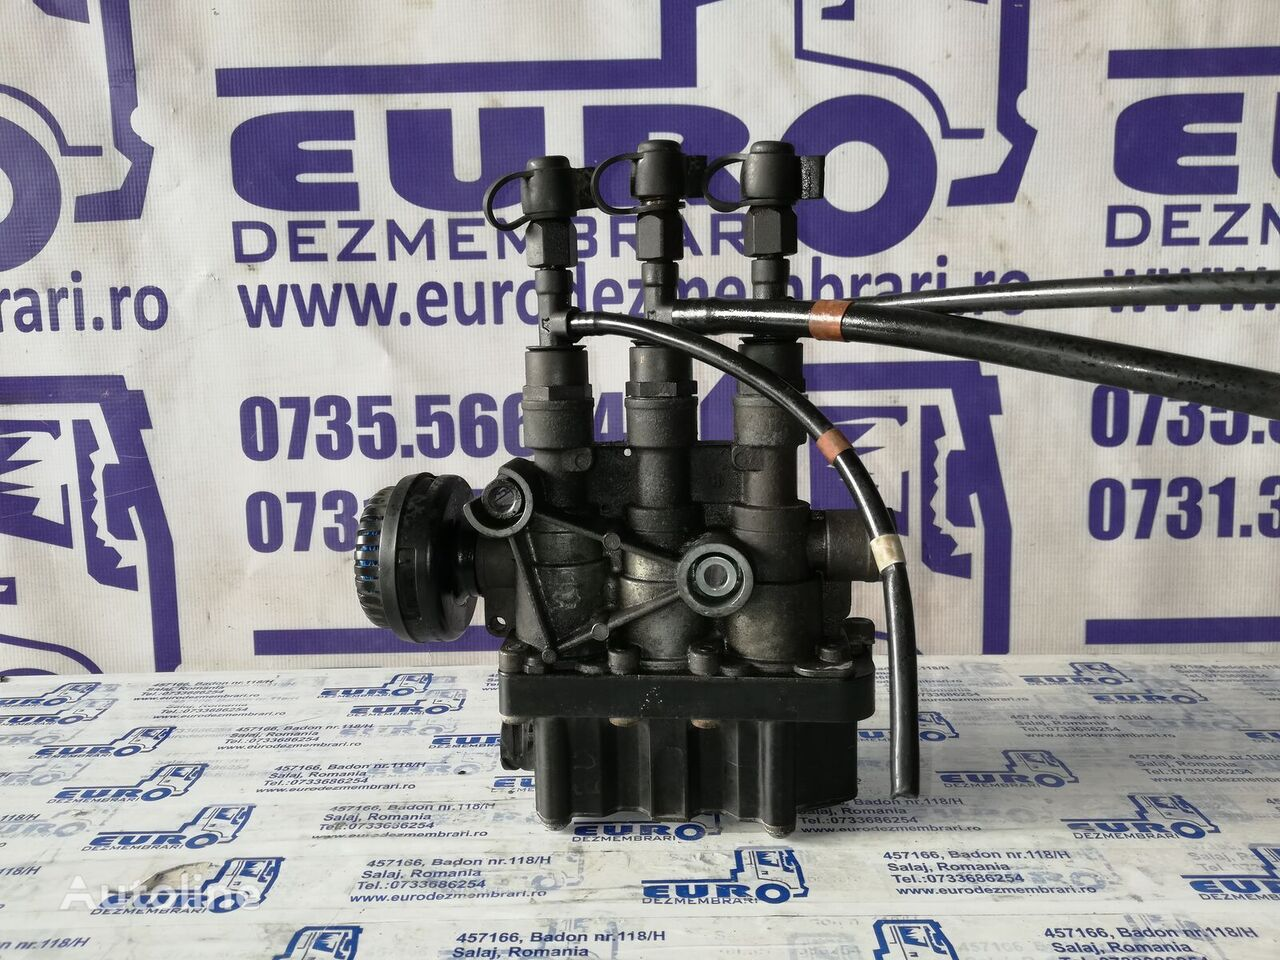 RENAULT egalizare pneumatic valve for tractor unit